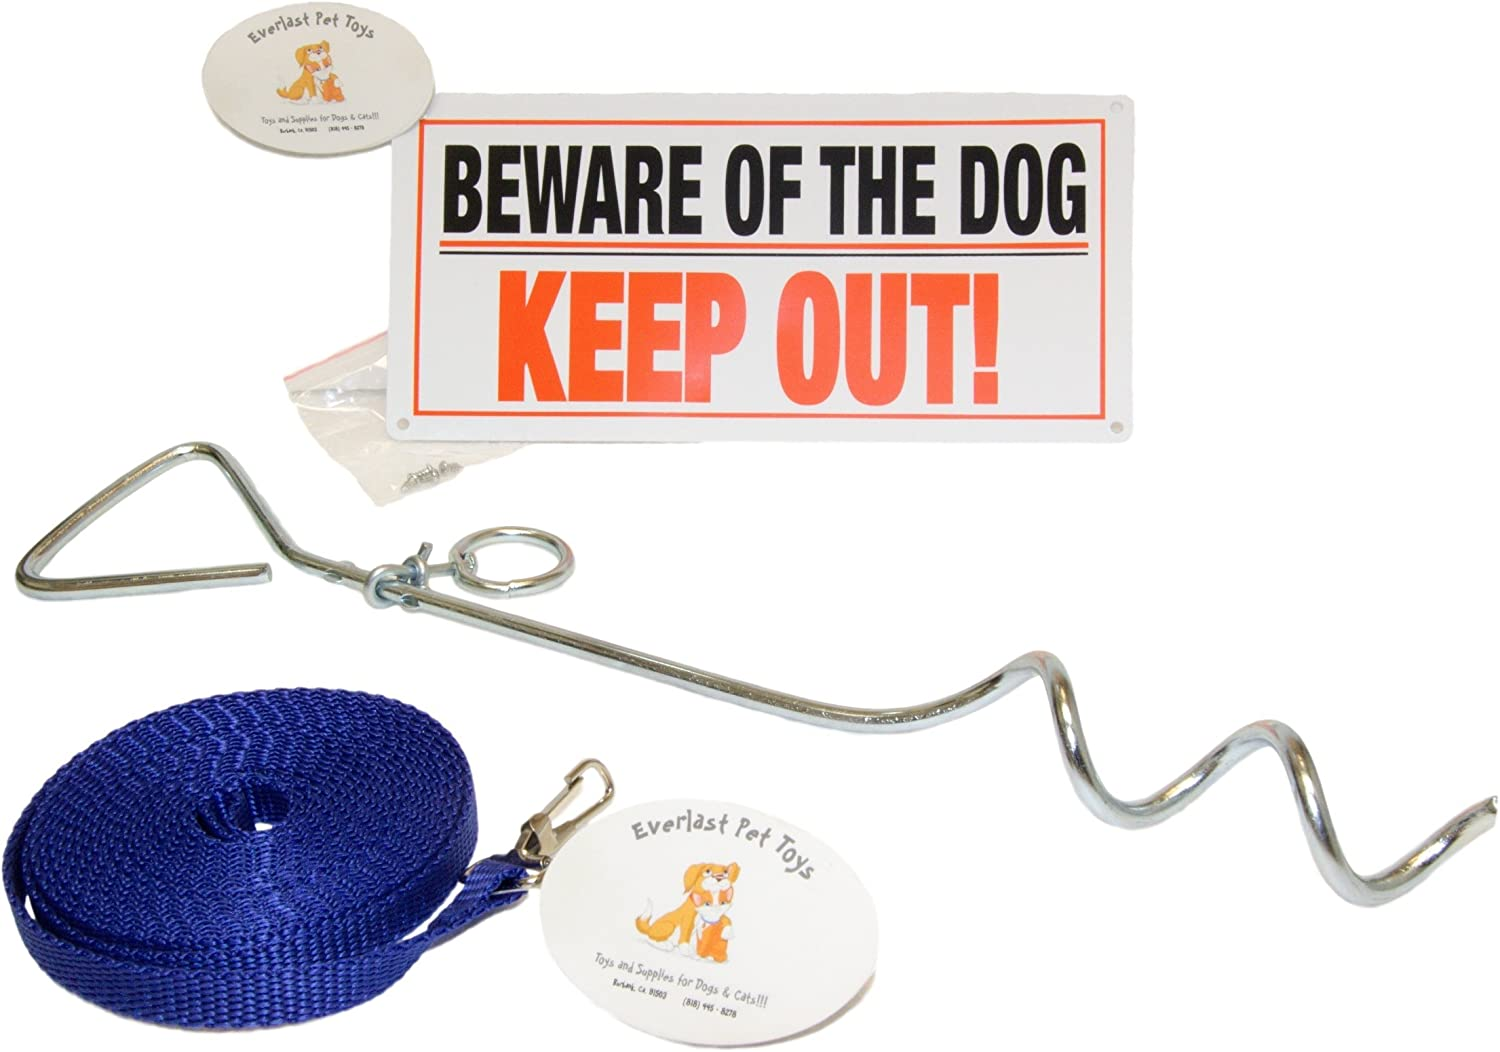 EMG Pet Emporium Best TieOut Bundle for Small to Medium Dogs   15  Metal Tie Out Stake   14' Leash   Guaranteed   'Beware of The Dog' Sign All Breeds  All Ages